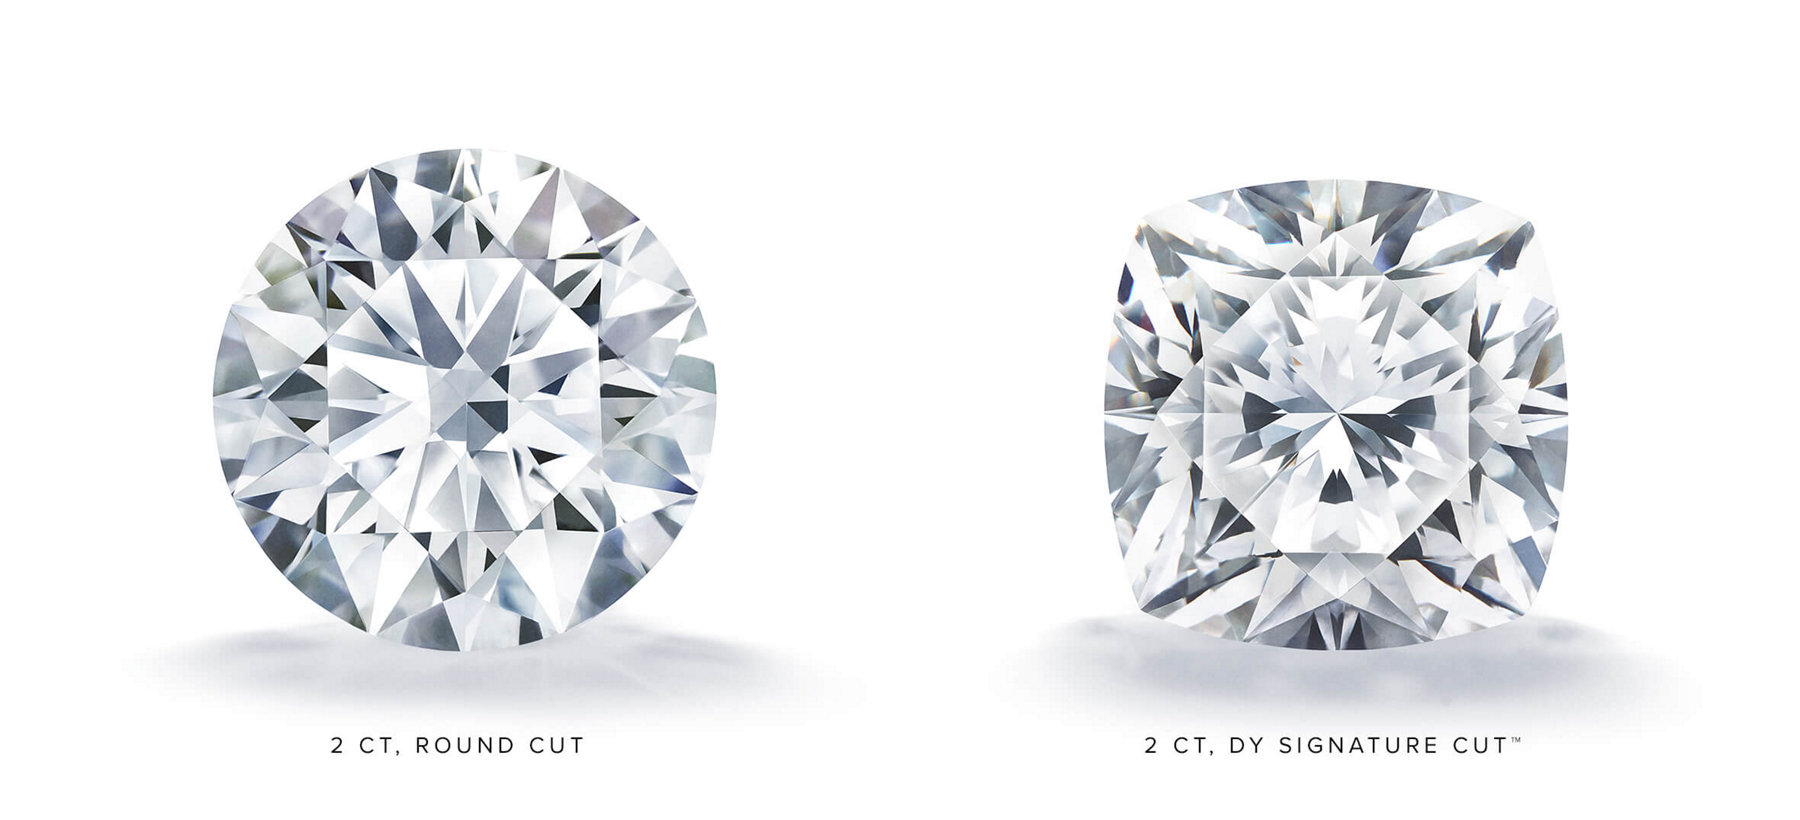 A 2-carat loose round brilliant diamond next to a 2-carat DY Signature Cut cushion-shape diamond on a white background with shadows underneath each stone.